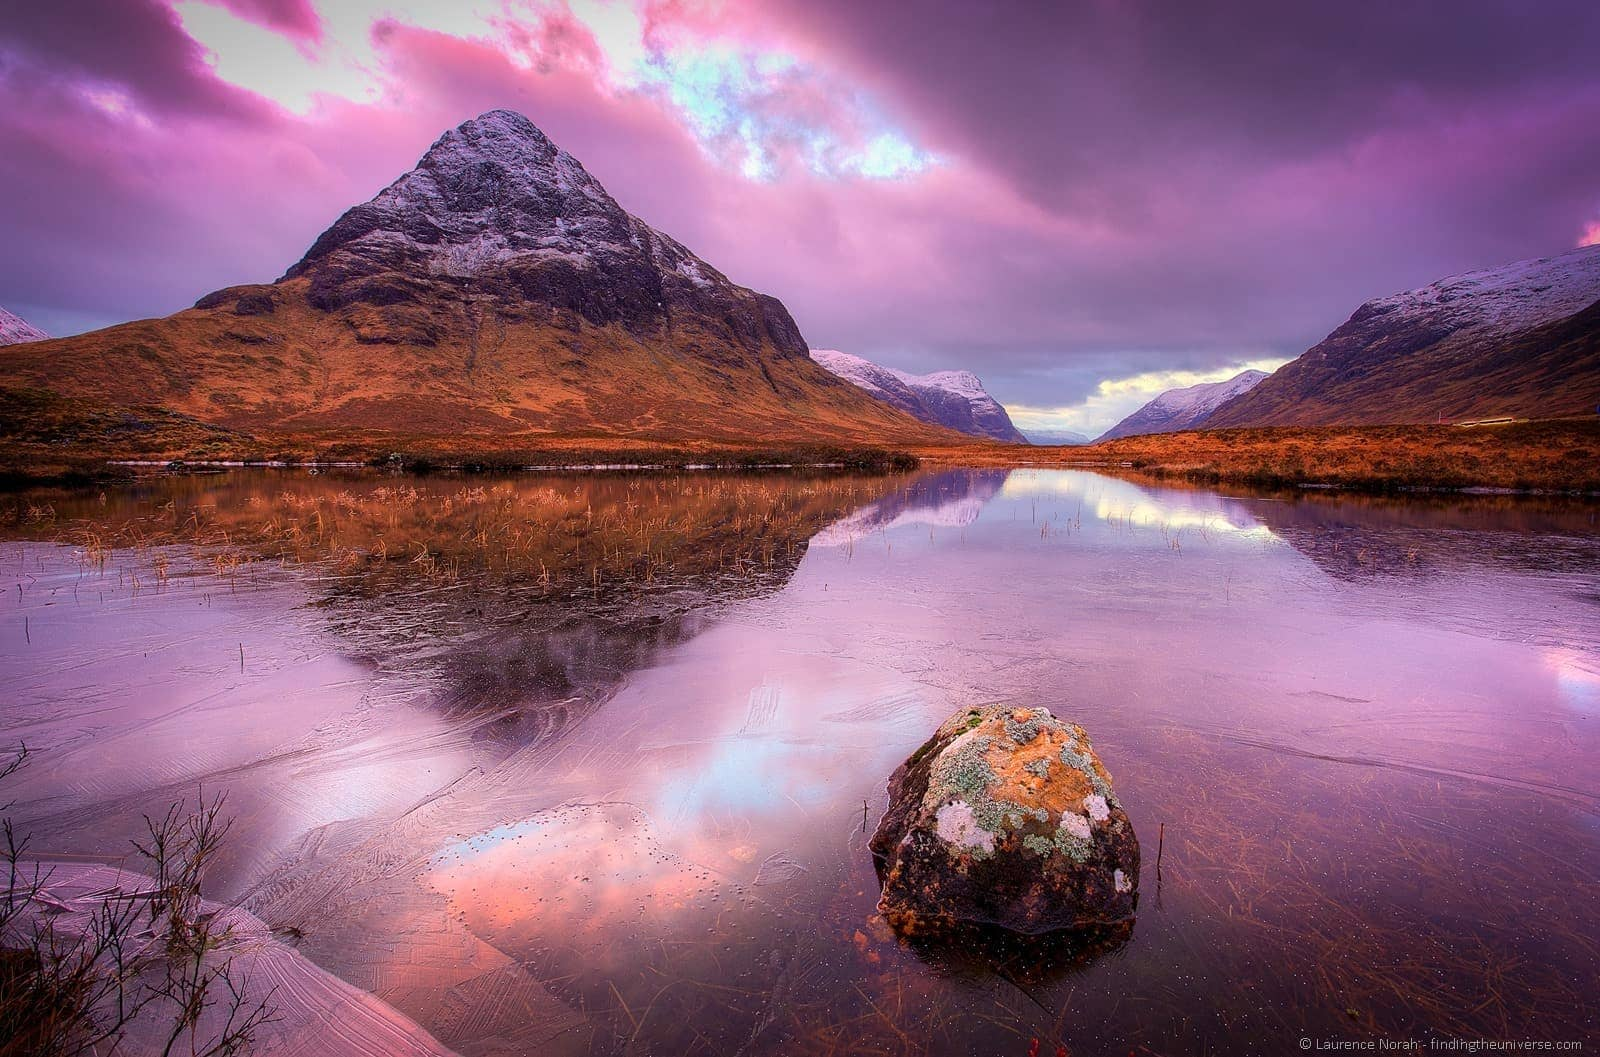 Values of water resource in scotland essay